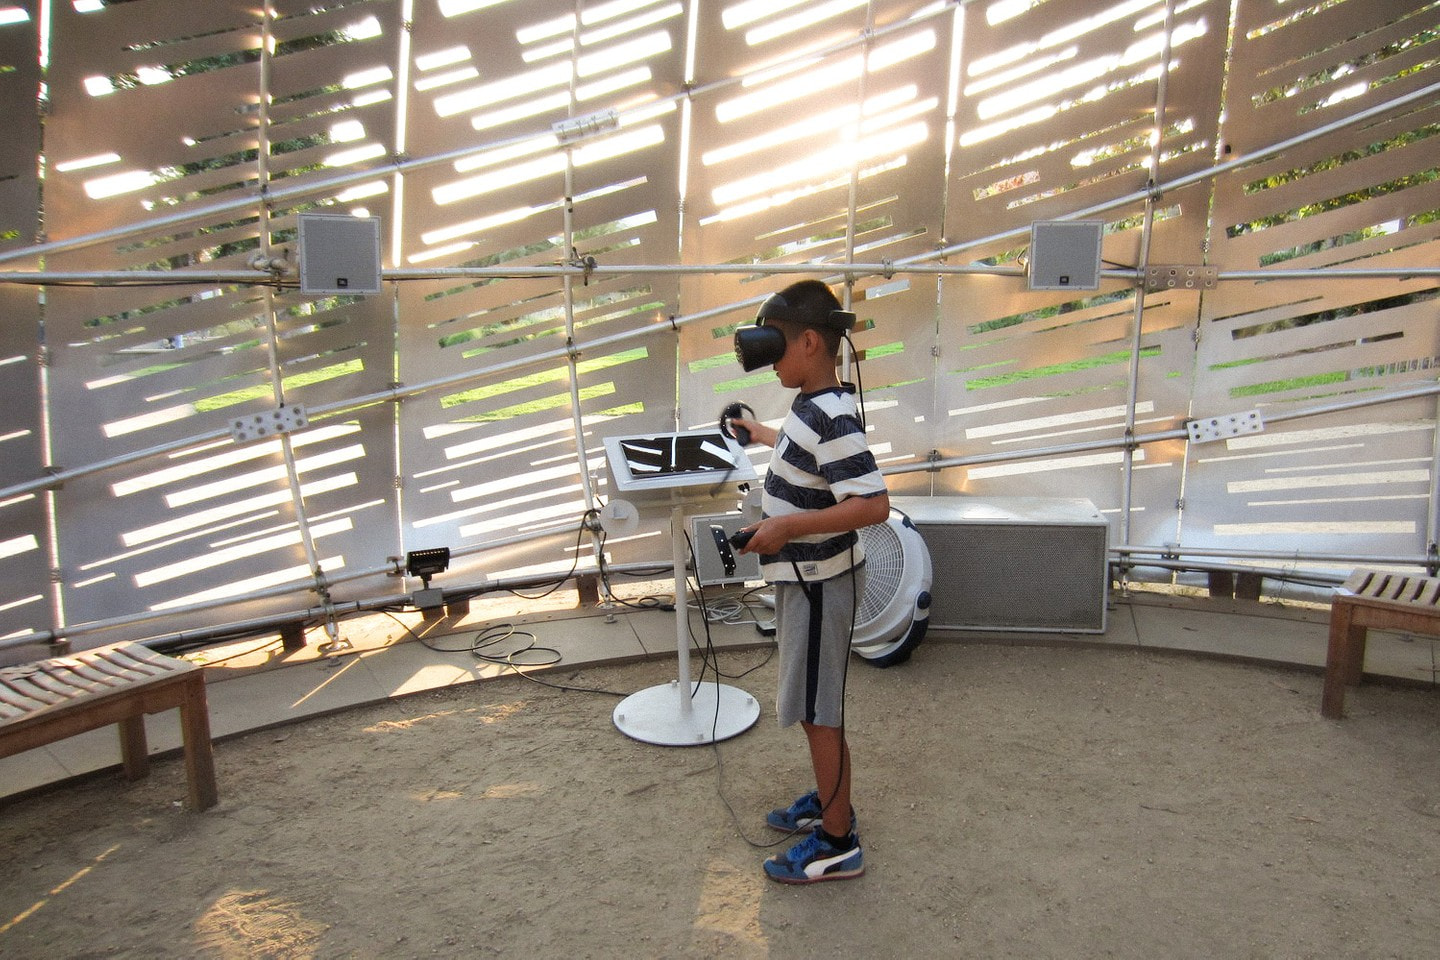 Visitors experincing InOrbit within the Orbit Pavilion